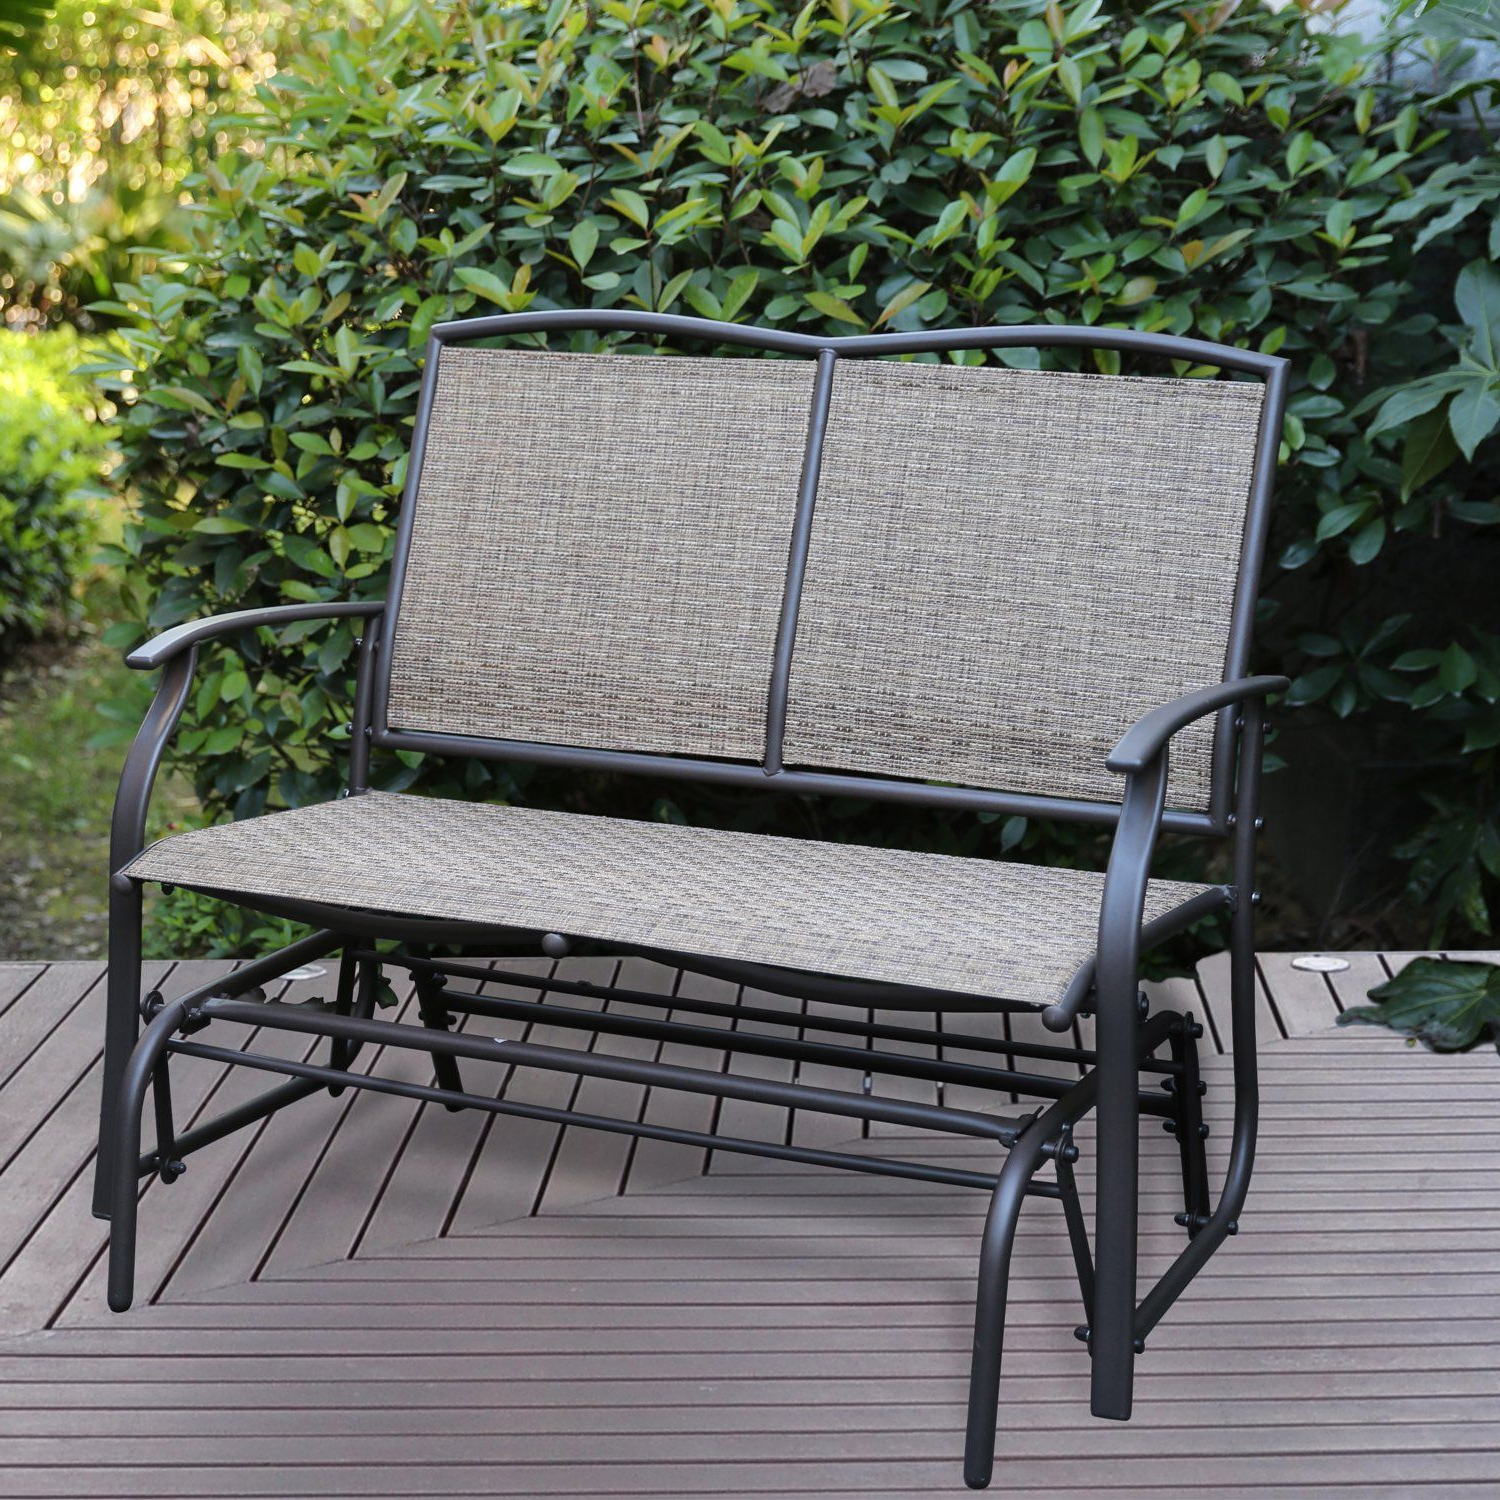 Famous Outdoor Patio Swing Glider Bench Chair S In Patio Tree Patio Swing Glider Bench For 2 Person All (View 4 of 30)